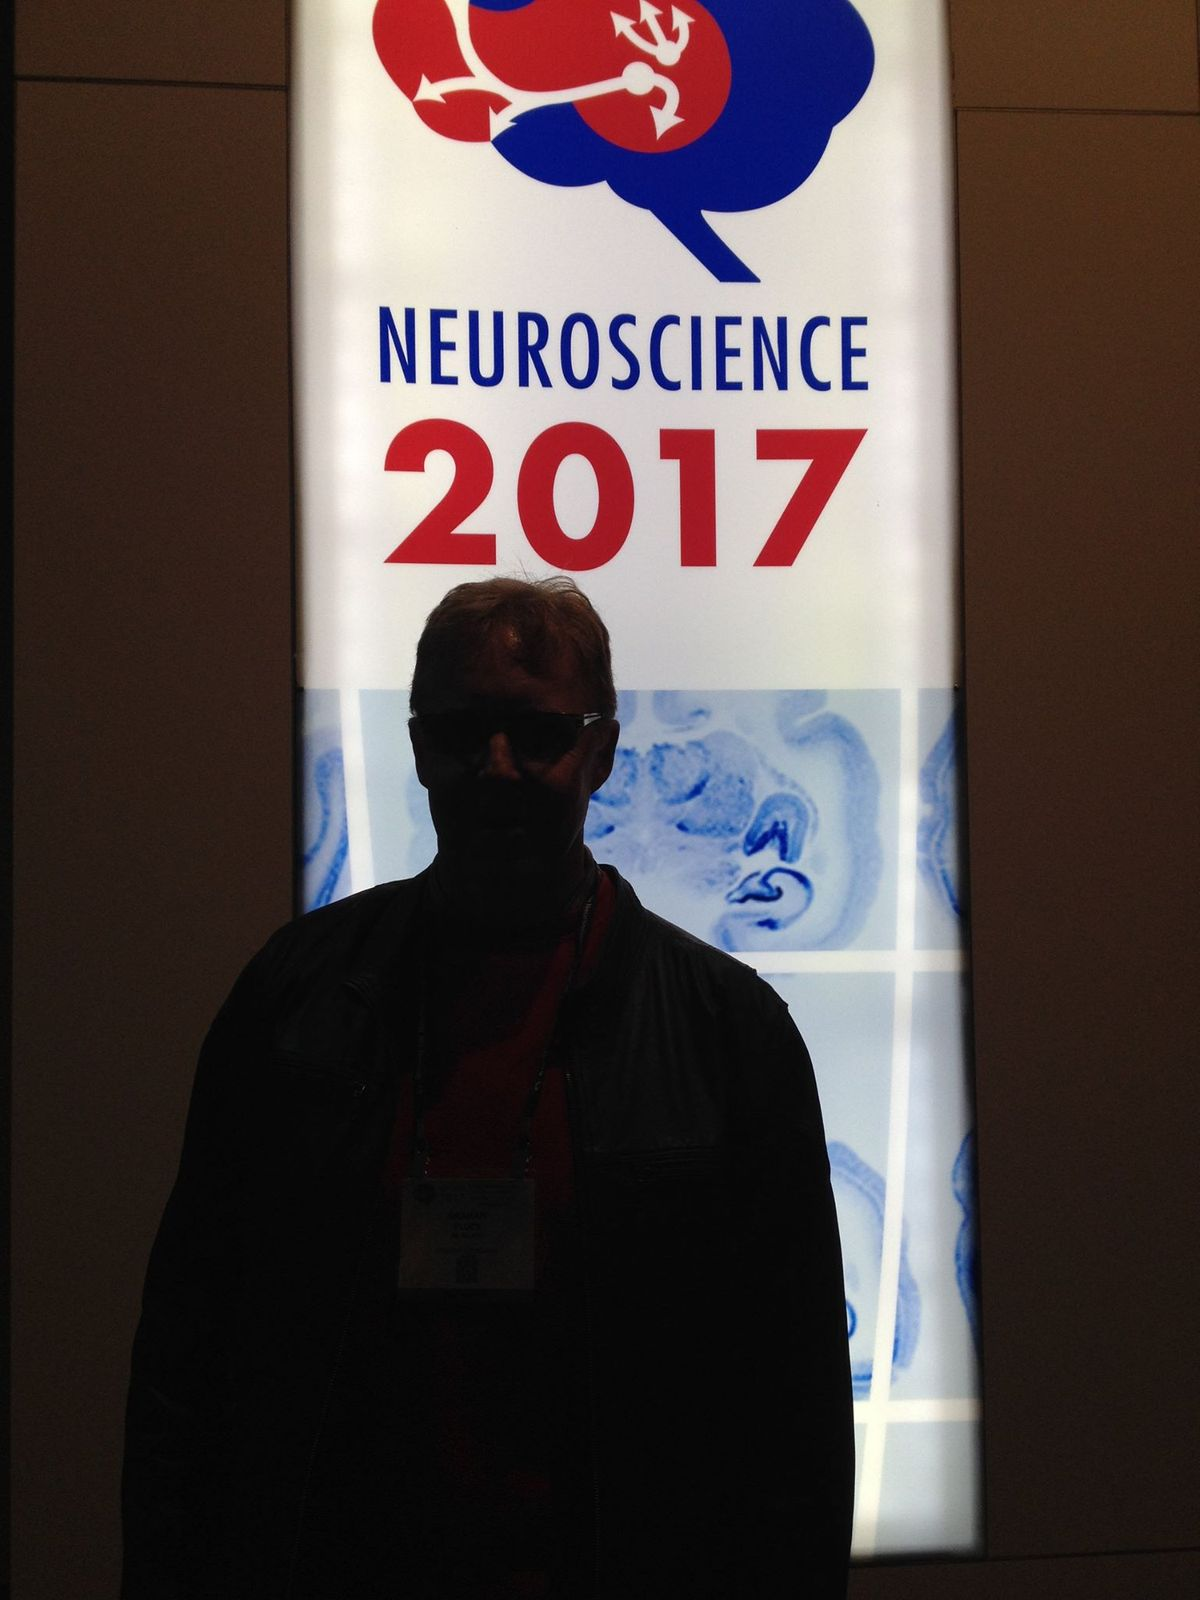 Society for Neuroscience Annual Congress, Washington, USA, 2017